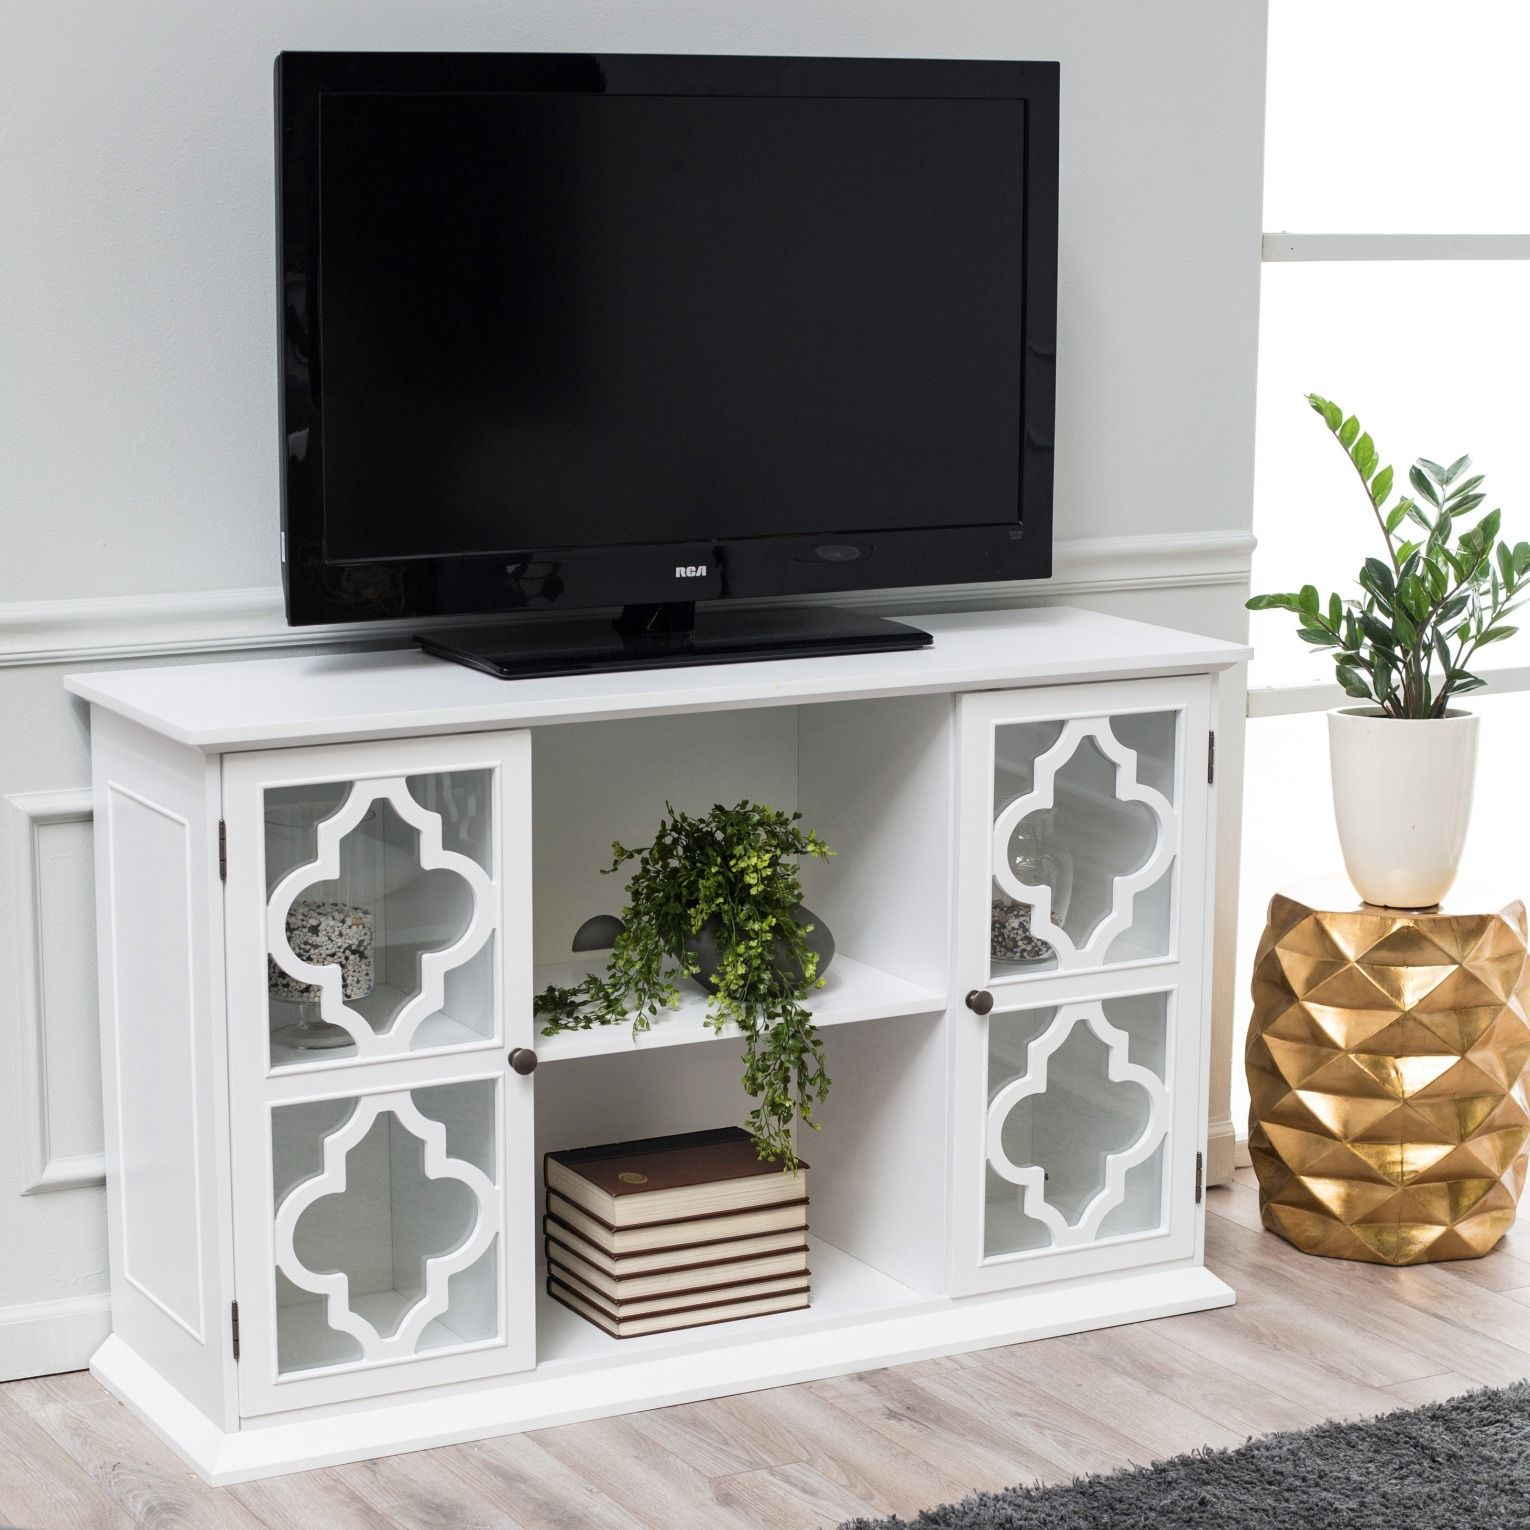 menards furniture entertainment mount inch stands multimedia stand motion tables tv bookcases great wall me bookcase whalen storage full flat with cabinets center